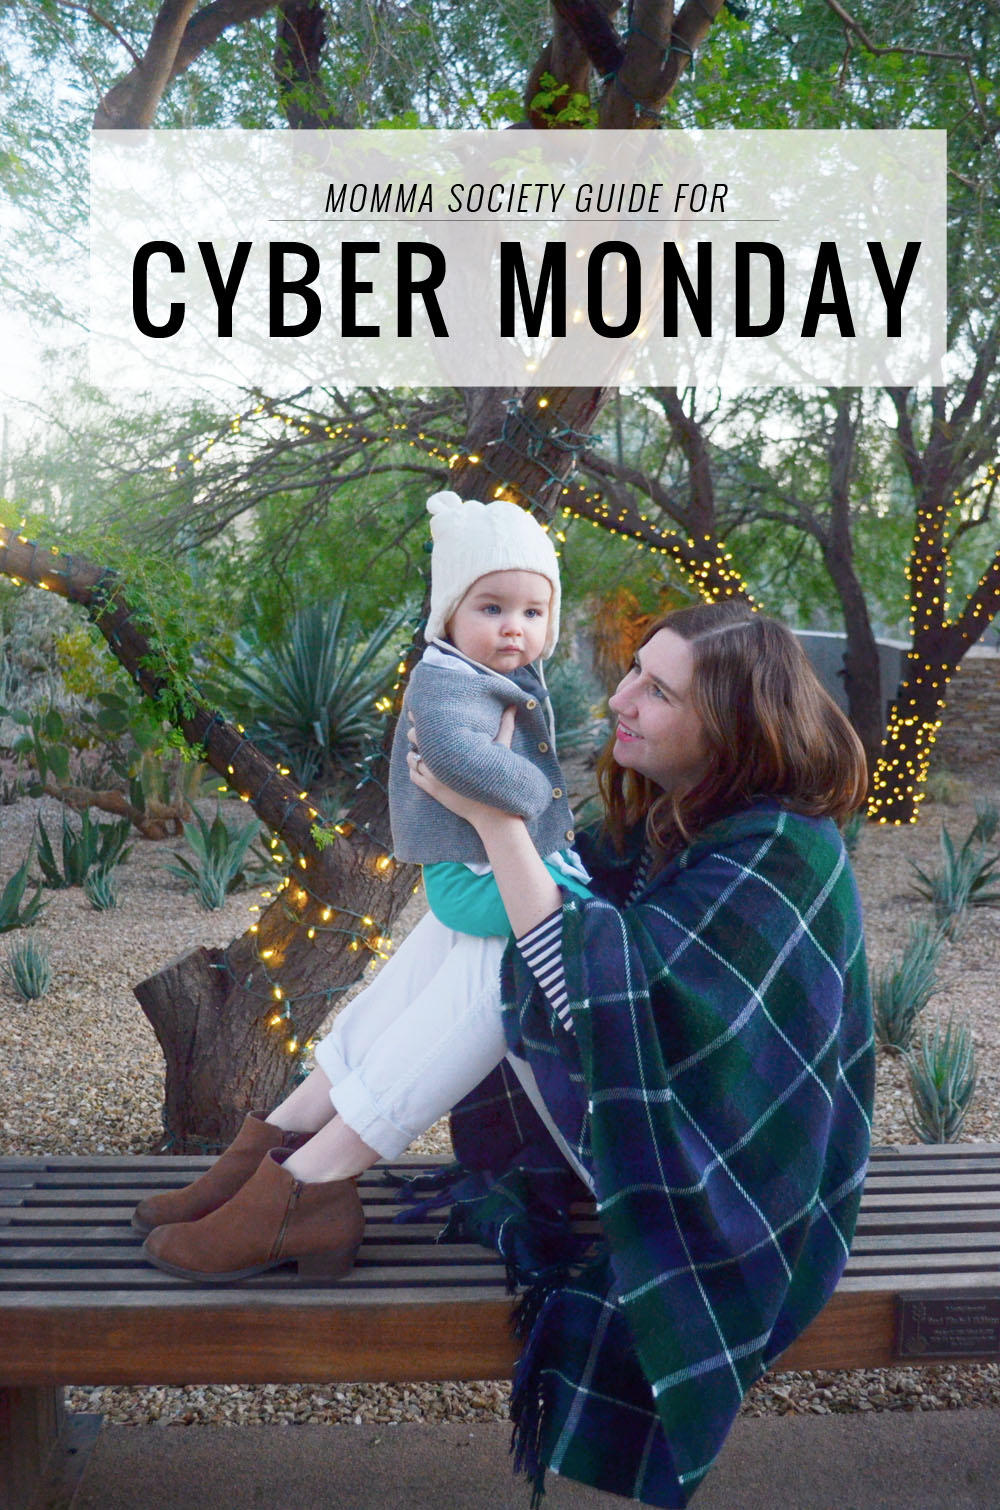 8 Cyber Monday Sales You Can't Afford To Miss   Momma Society-The Community of Modern Moms   www.MommaSociety.com